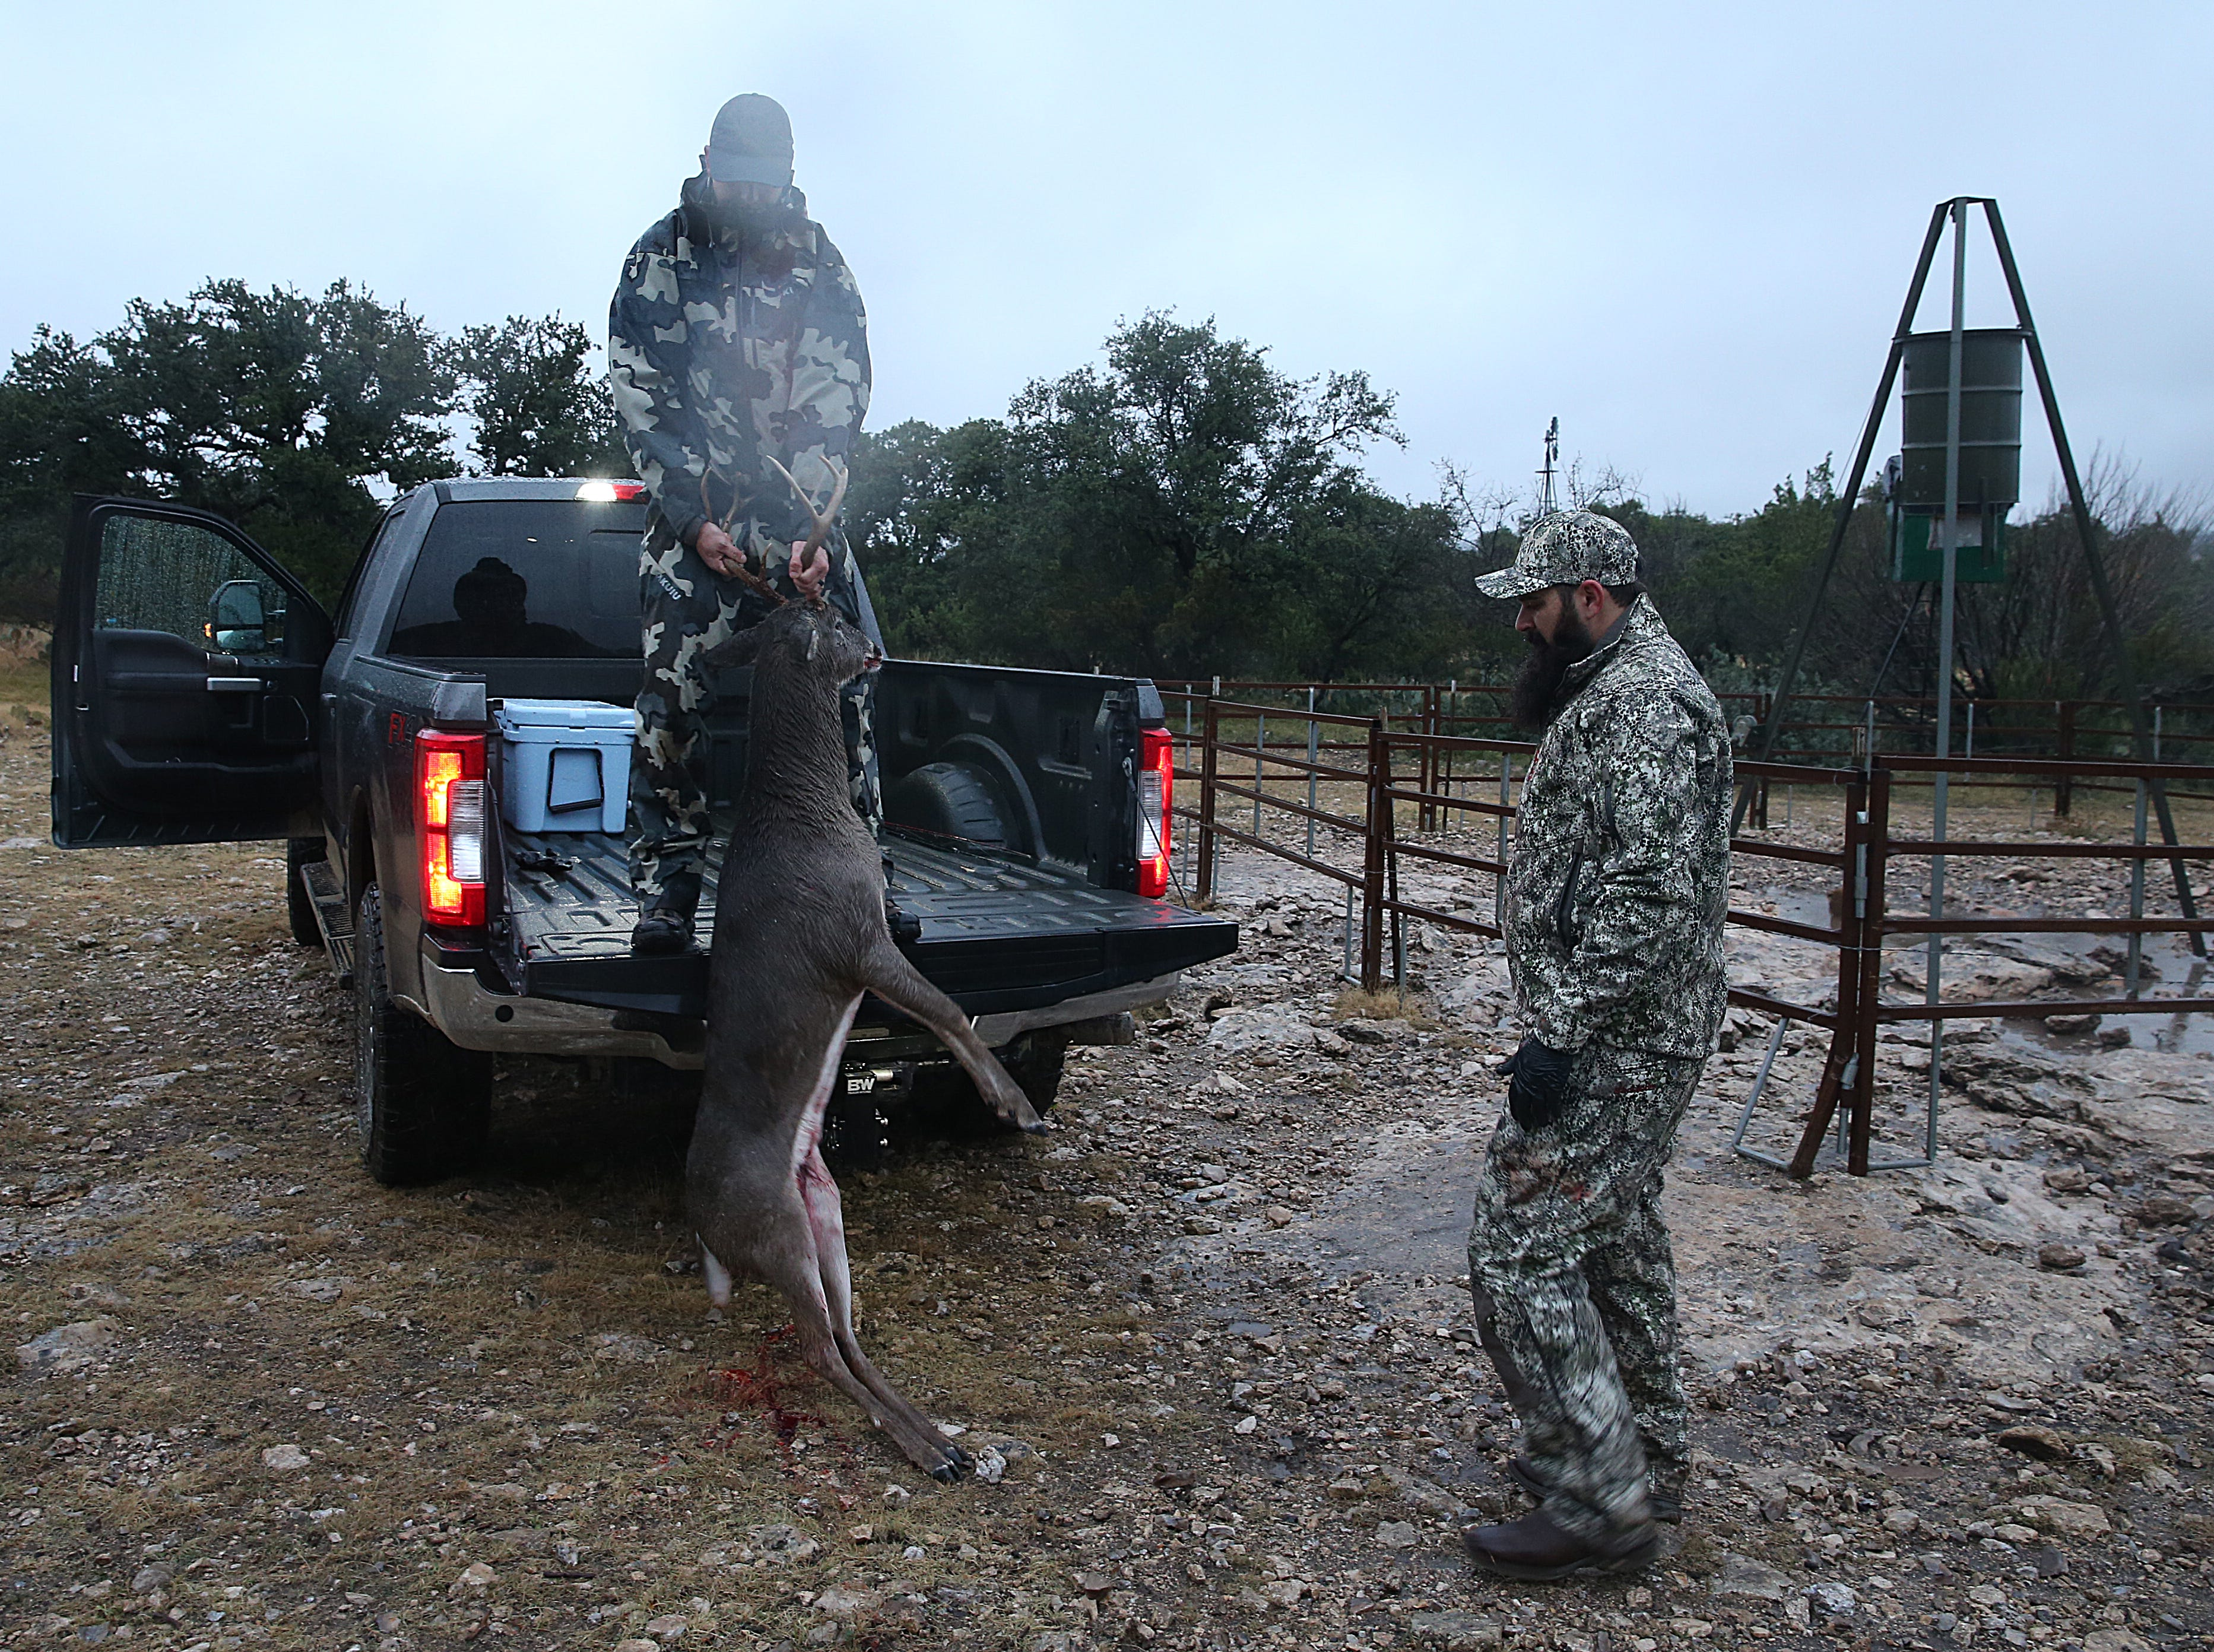 Hunters Ryan Dupriest (left) and Joseph Lewis load a deer onto their truck Friday, Dec. 7, 2018 during the annual deer hunt in Christoval sponsored by San Angelo Support for Veterans and Lone Star Warriors Outdoors.